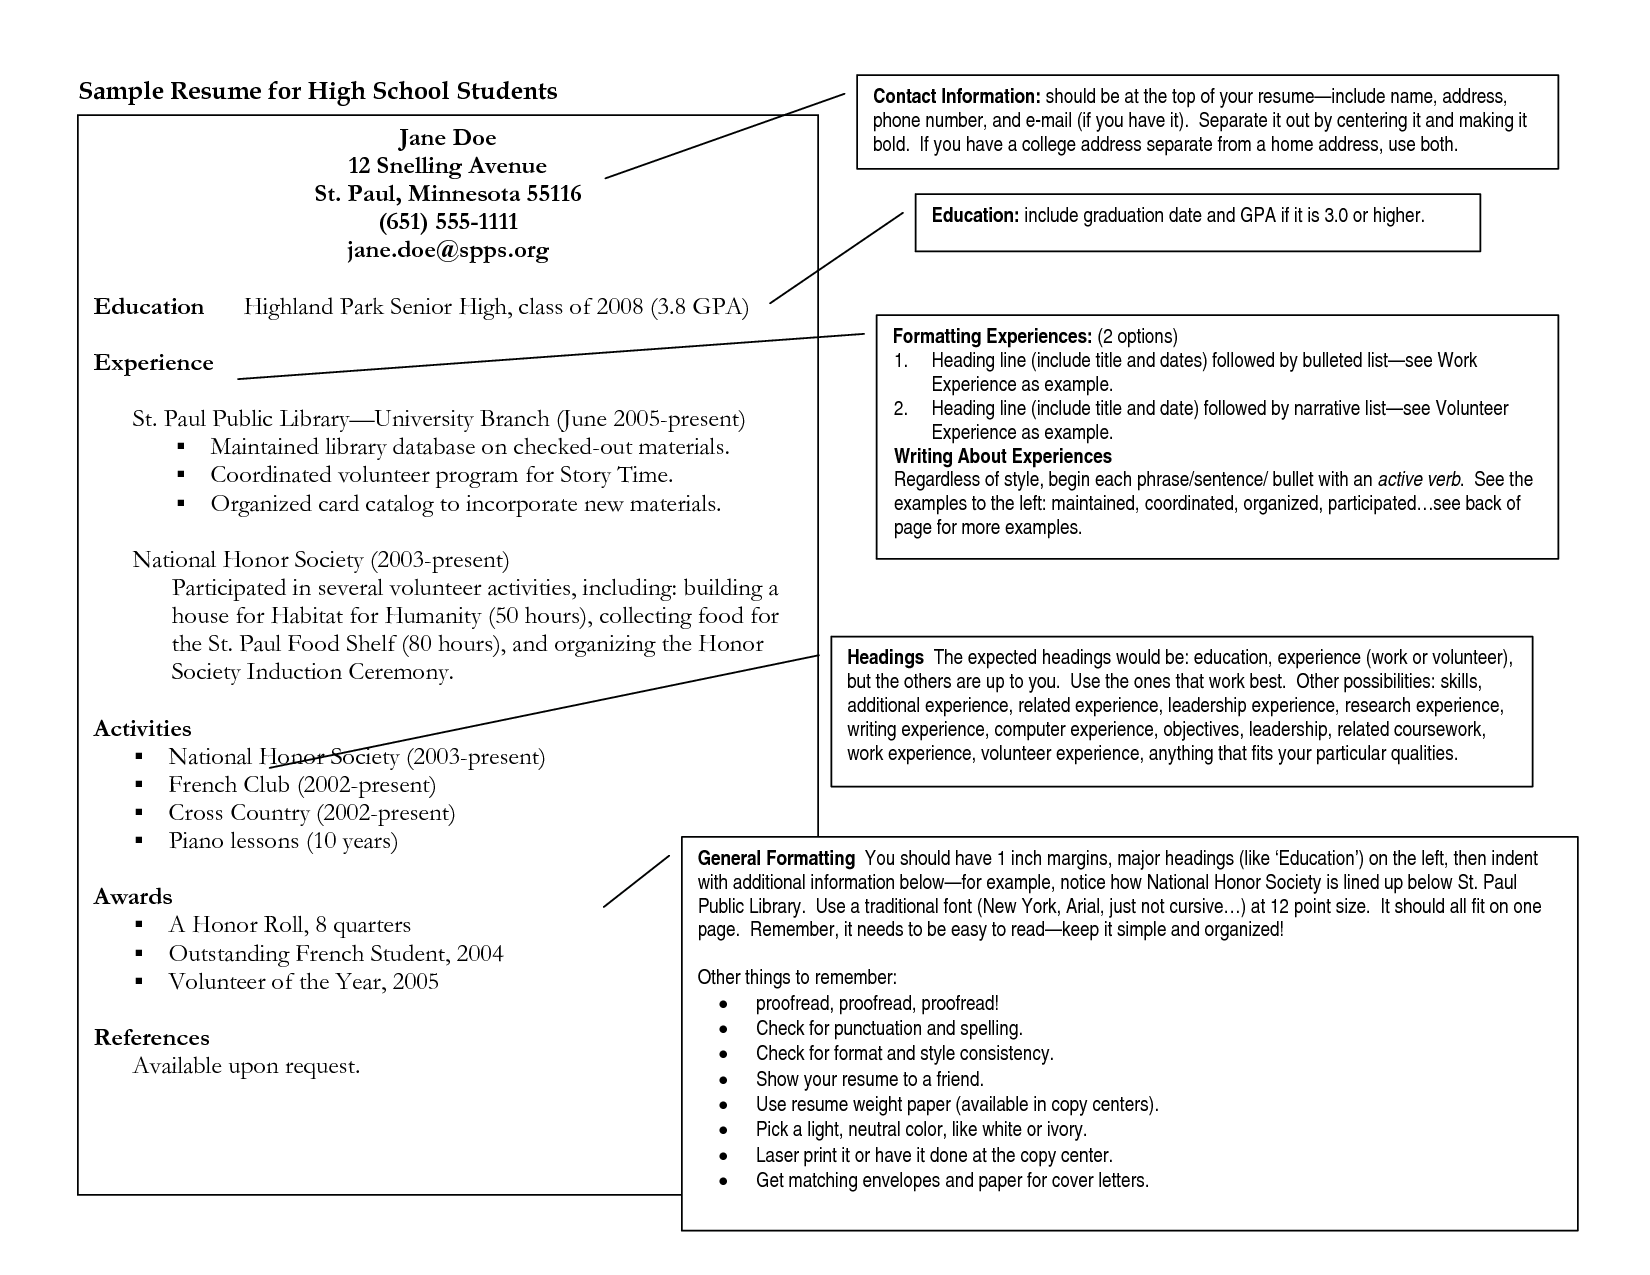 Sample Resumes For High School Students Captivating Bridget Ferguson Bferguson1661 On Pinterest